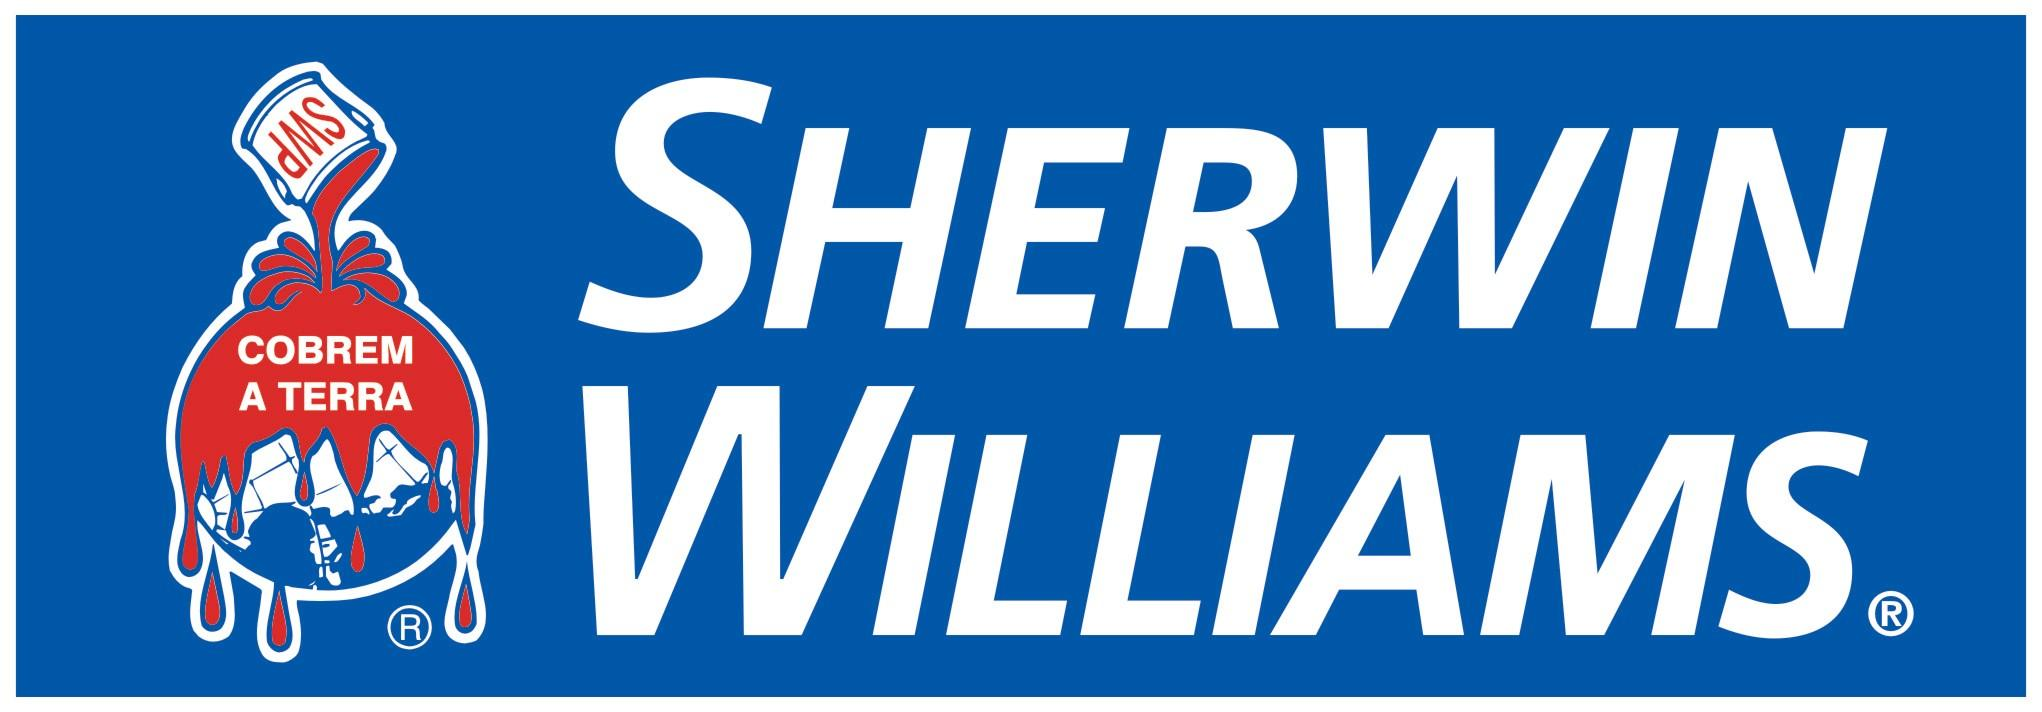 Sherwin Williams Stock Quote Sherwinwilliams Co  An Unsung Growth Hero  The Sherwinwilliams